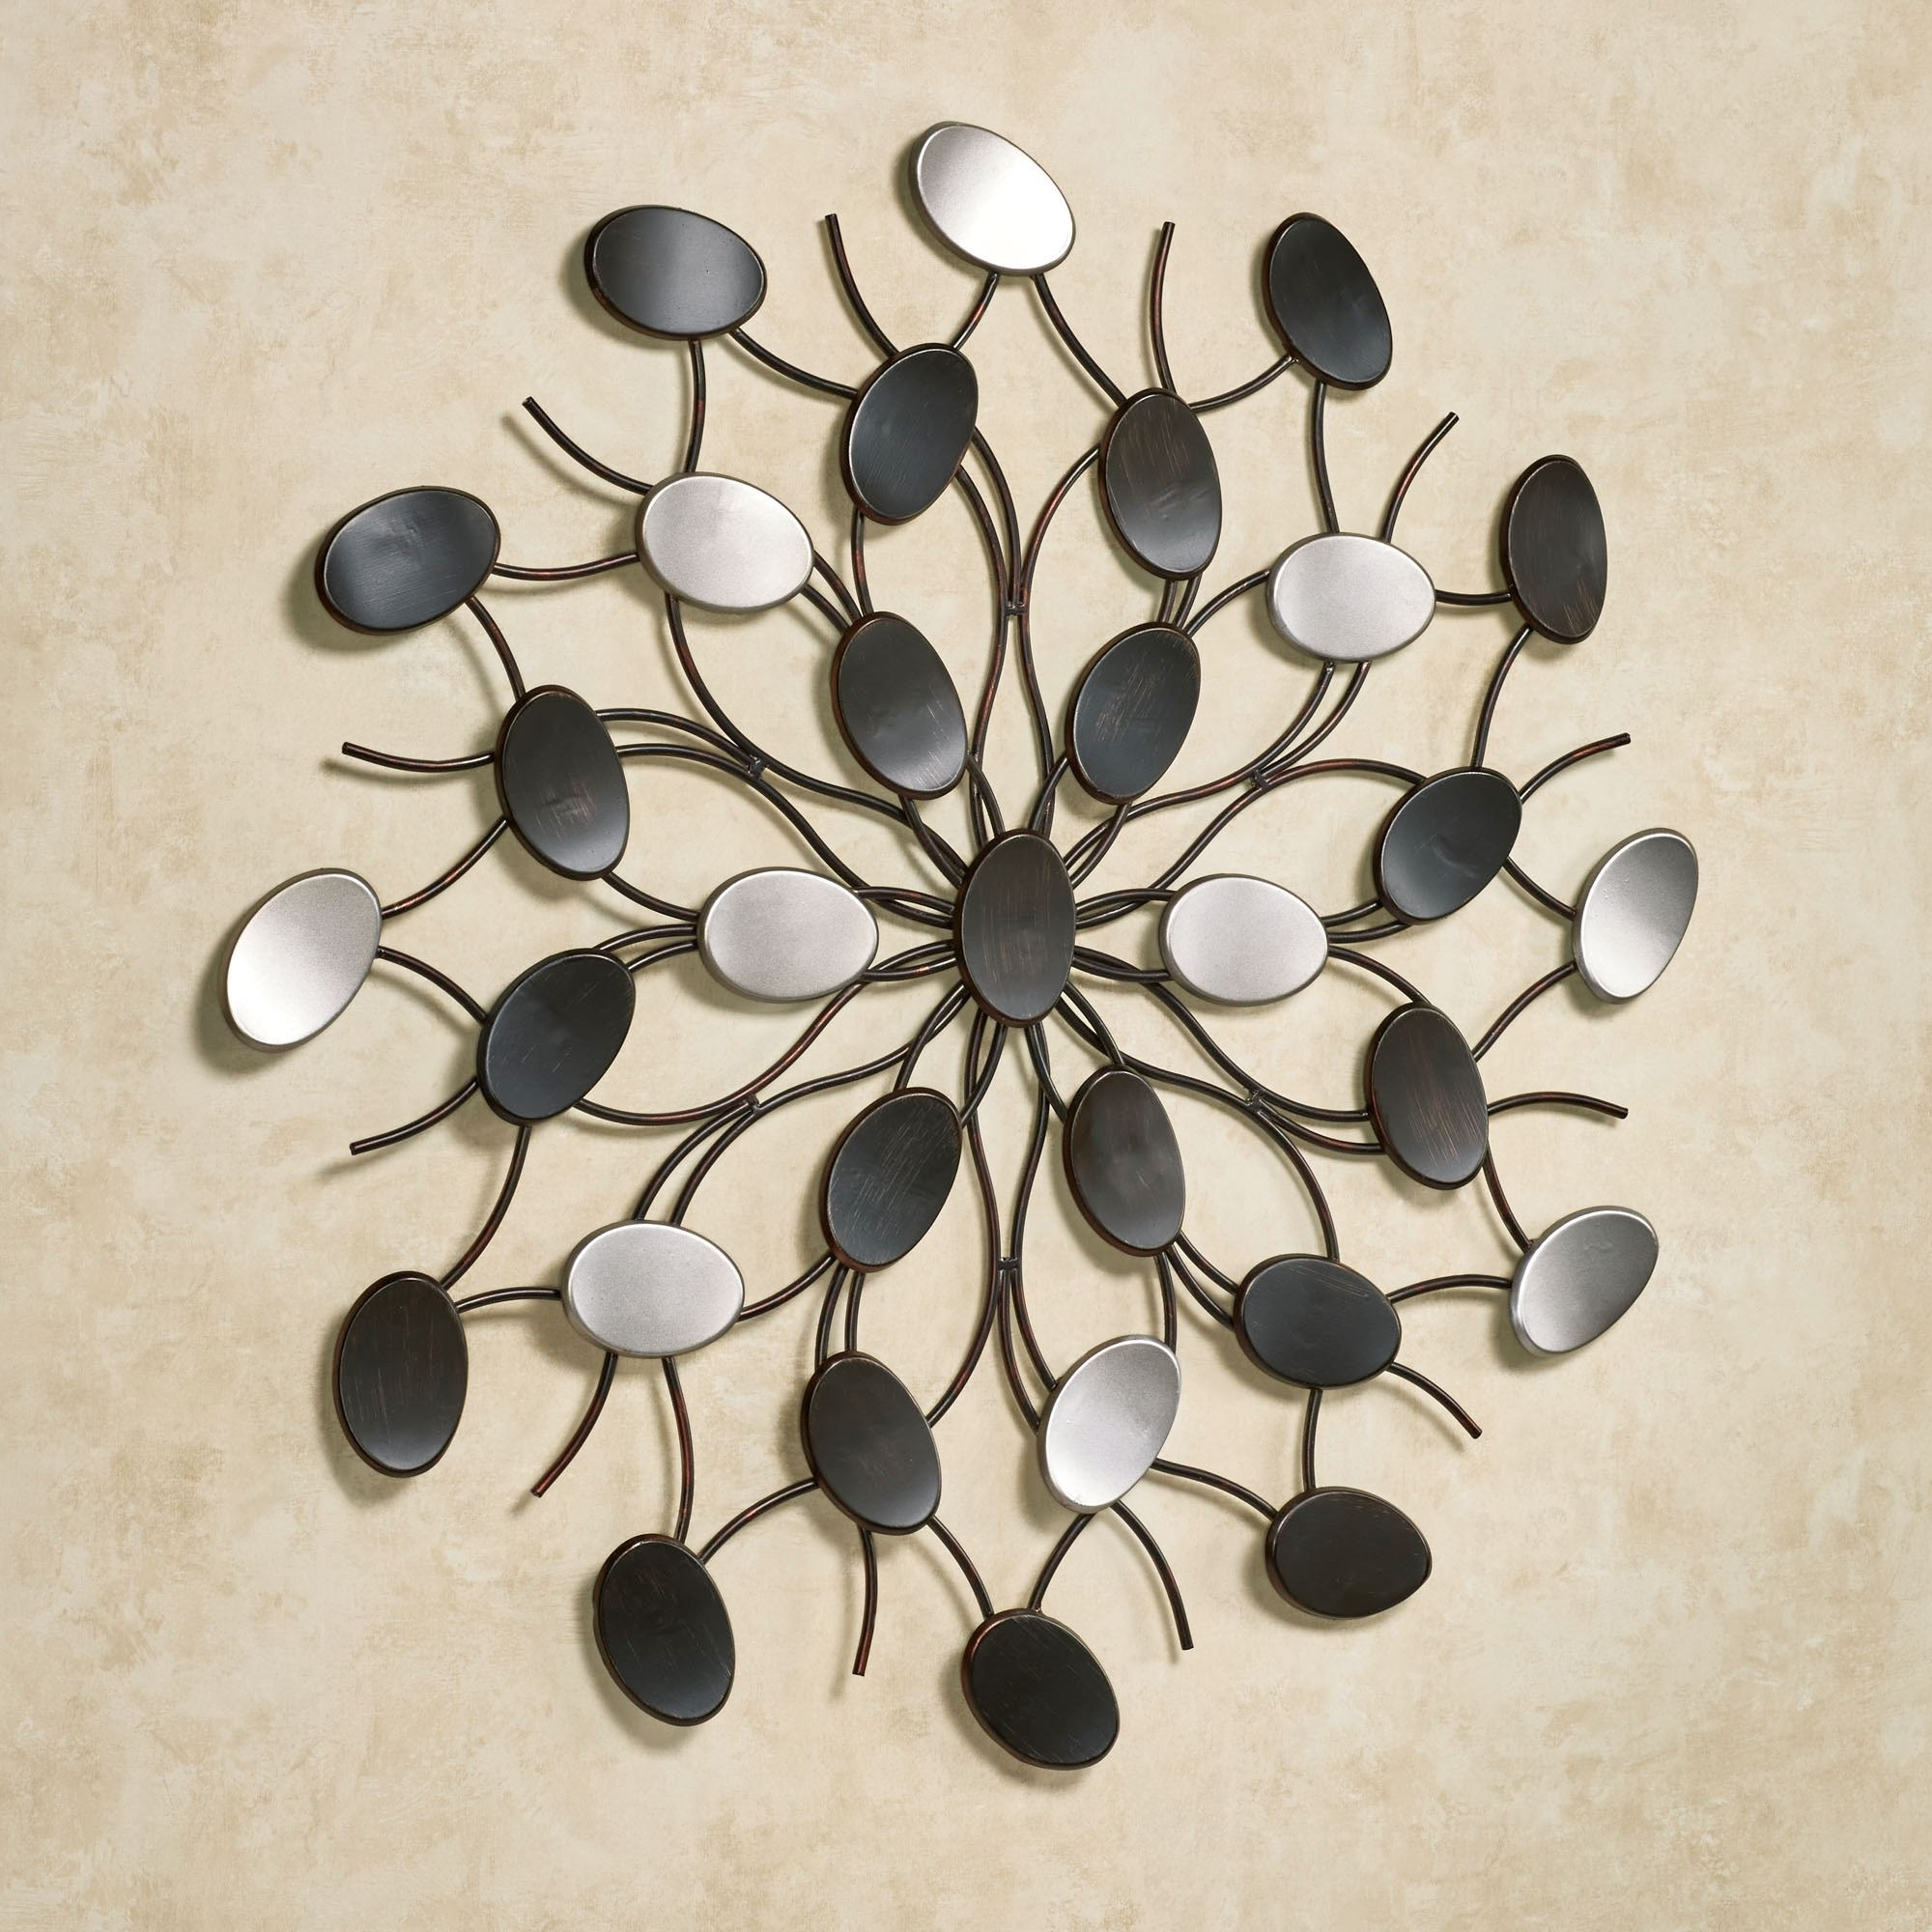 Radiant Petals Abstract Metal Wall Art Intended For Recent Abstract Outdoor Metal Wall Art (Gallery 3 of 14)